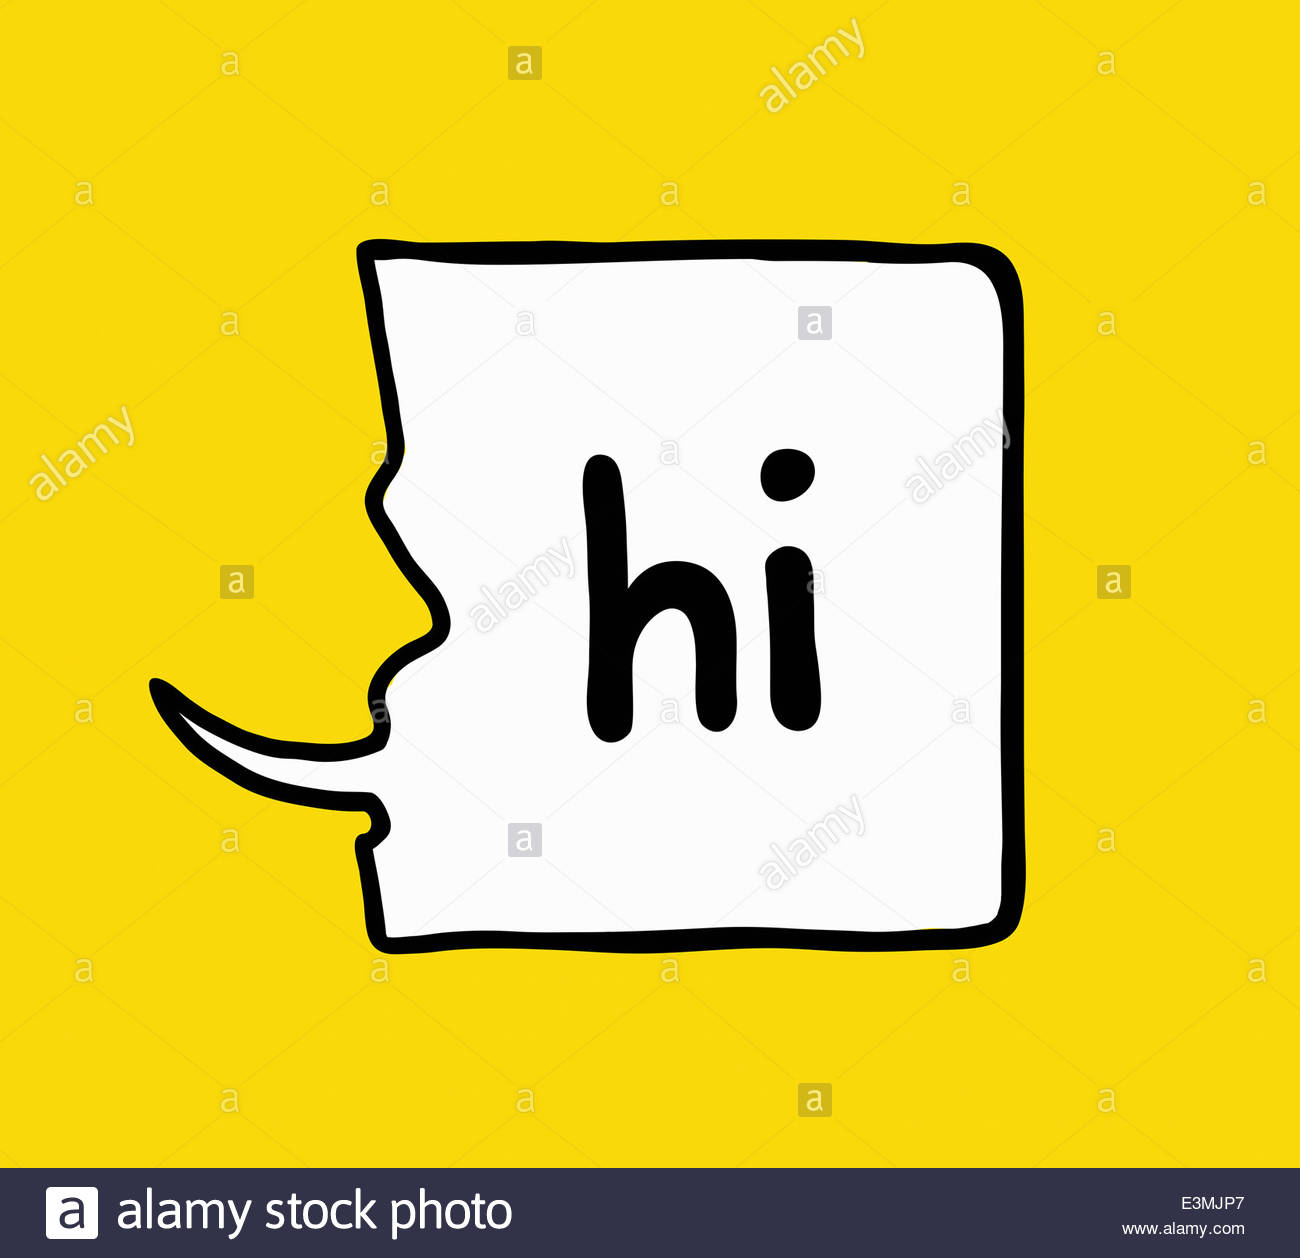 Profile of face saying 'Hi' in speech bubble - Stock Image